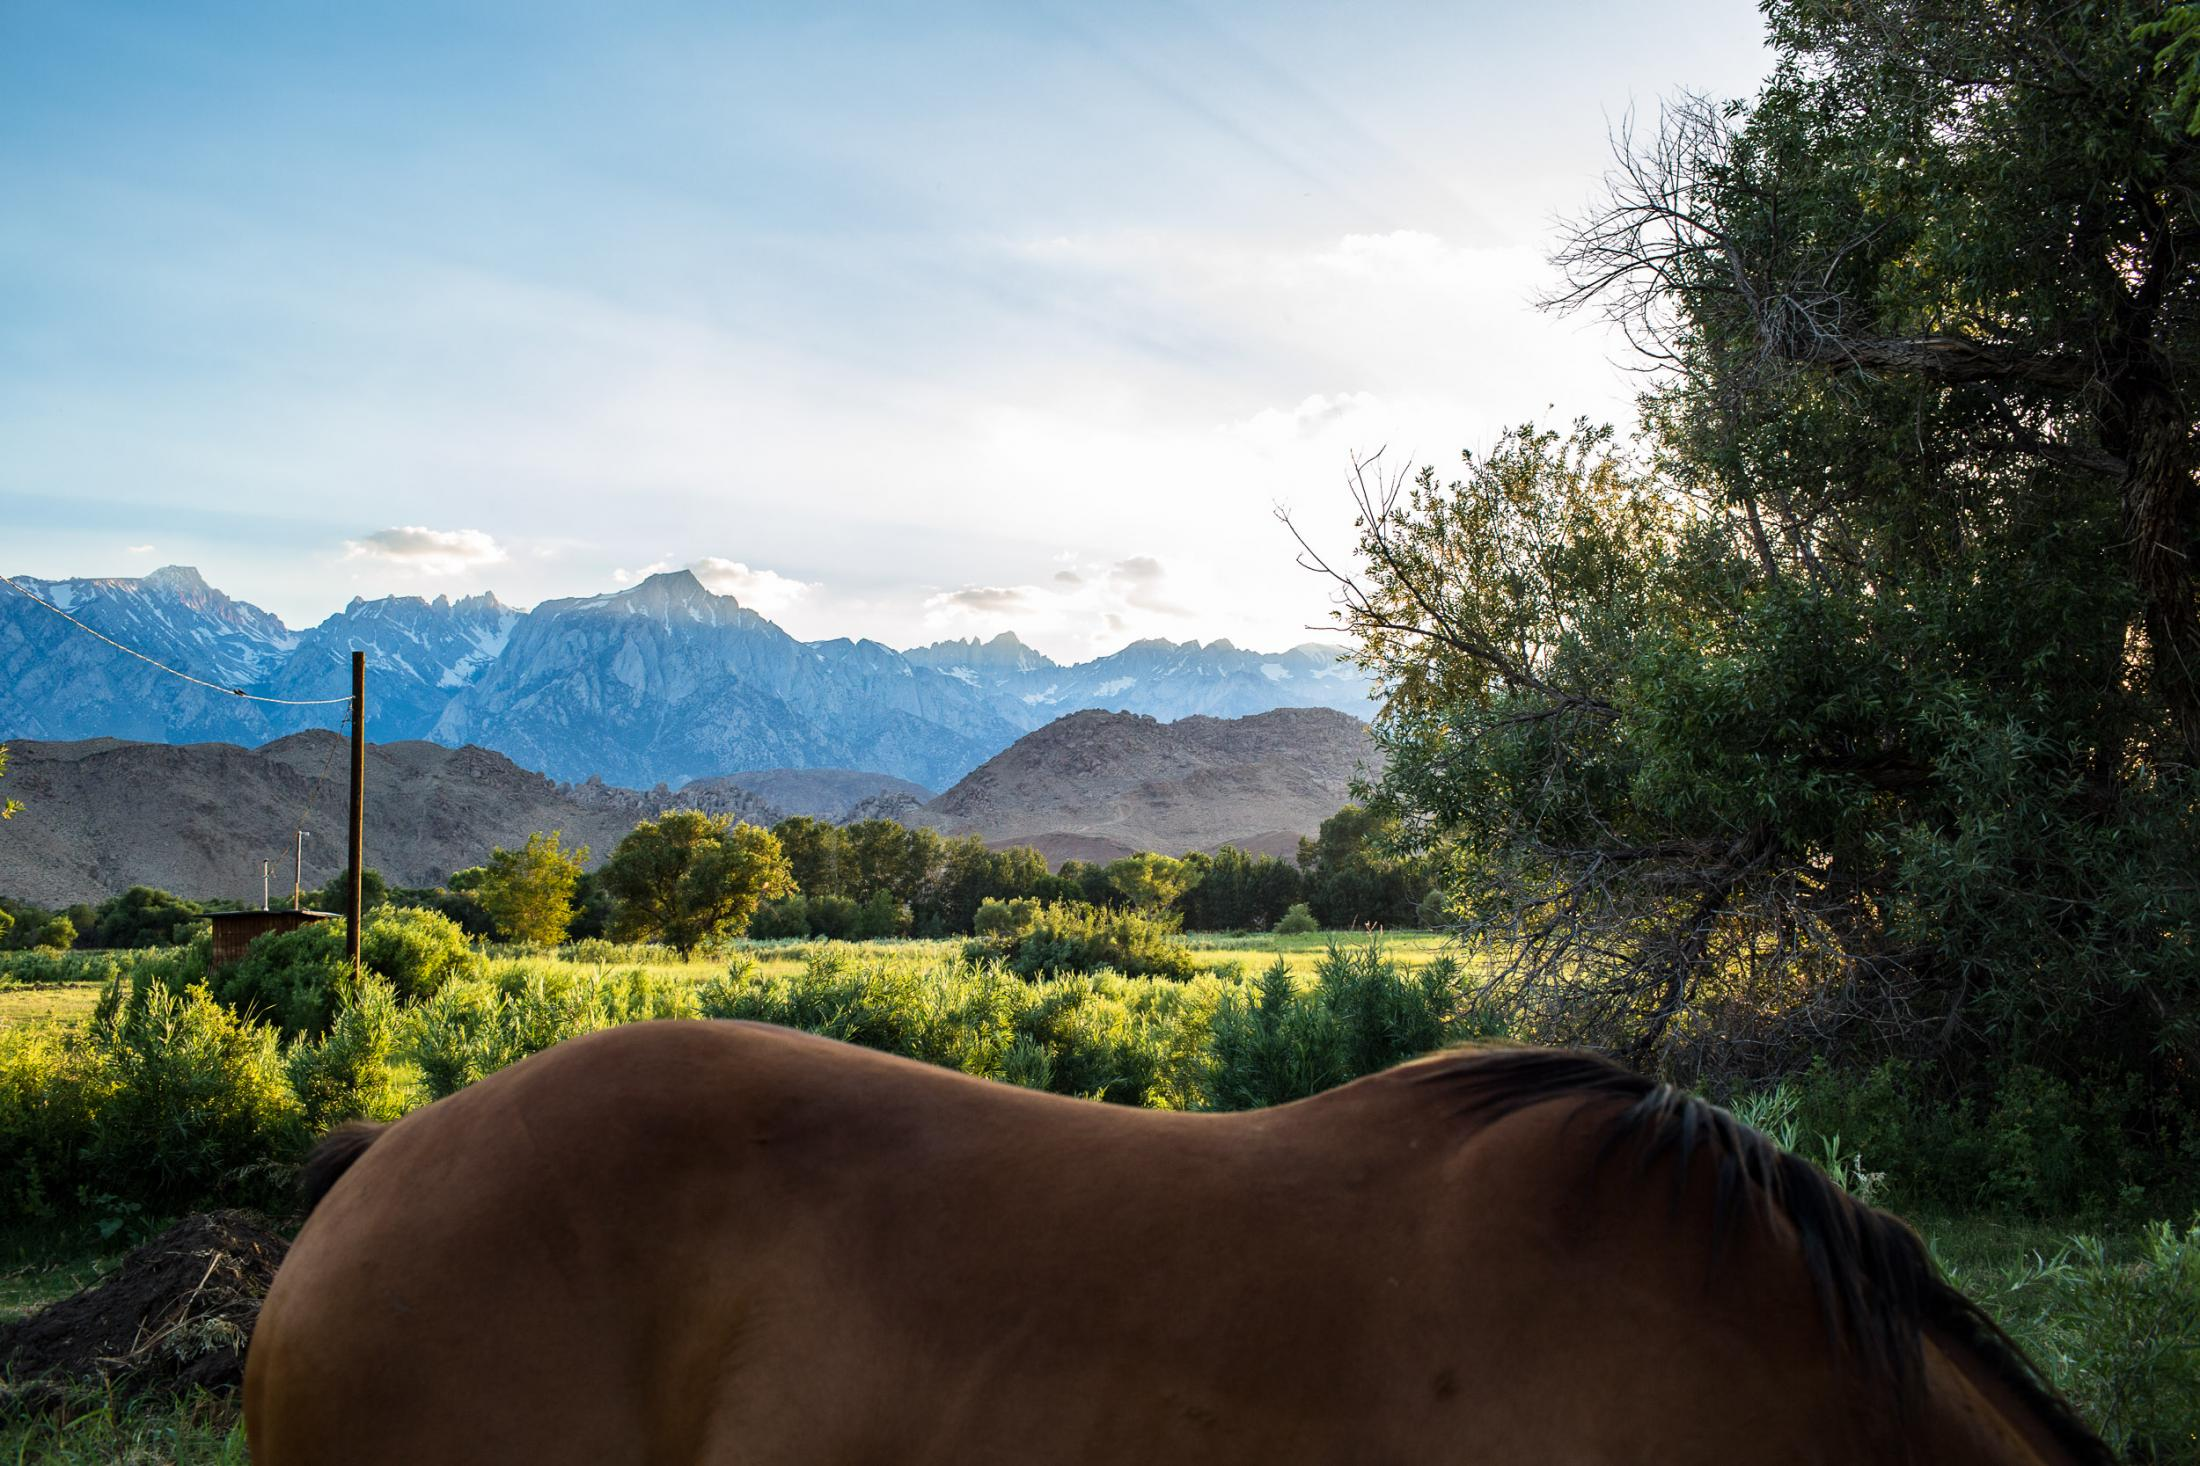 11. Horse back and Mt, Whitney in the background. -June 2018